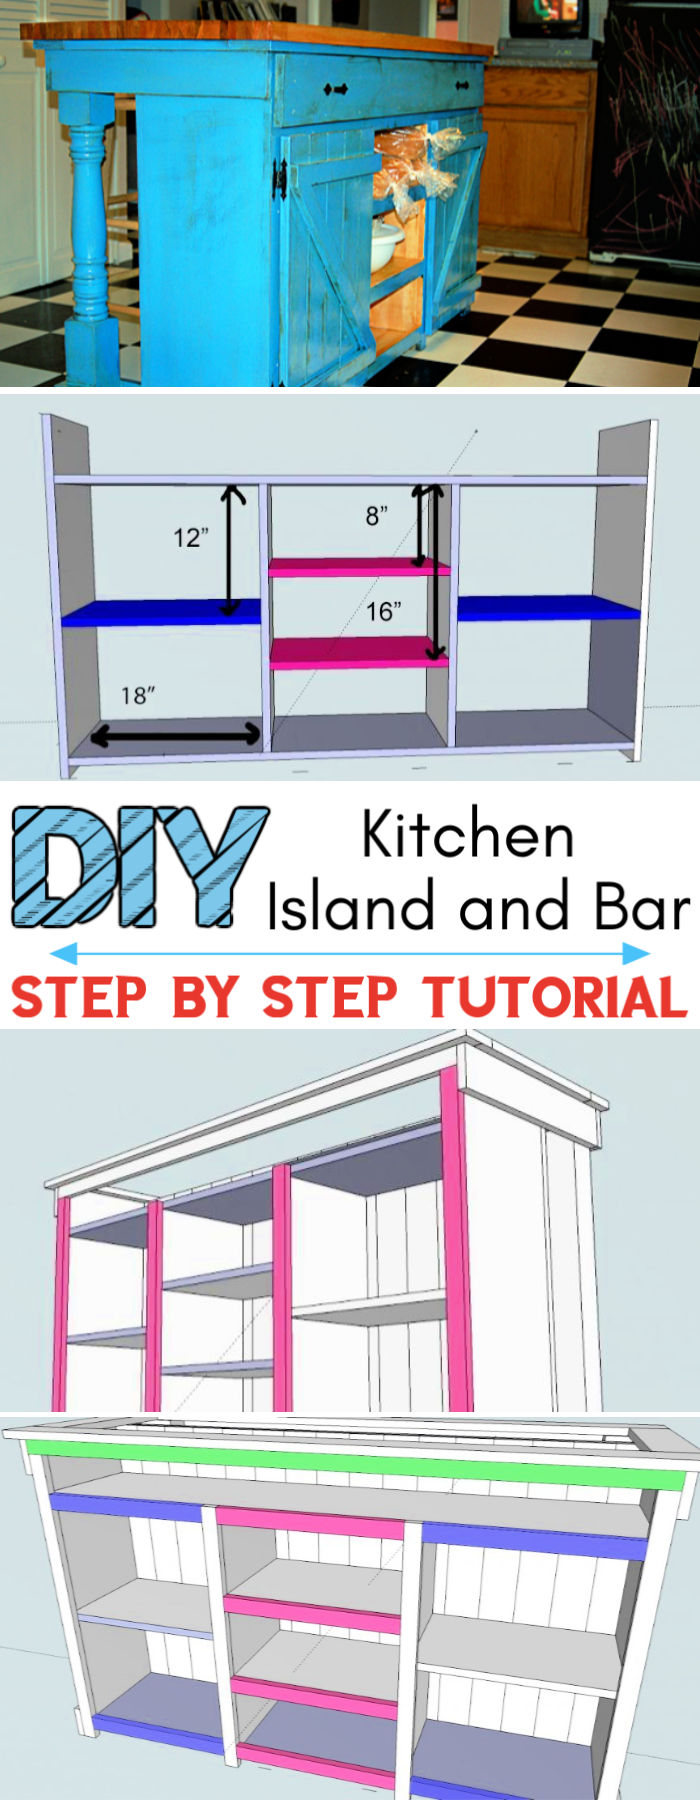 DIY Farmhouse Kitchen Island Bar Plan